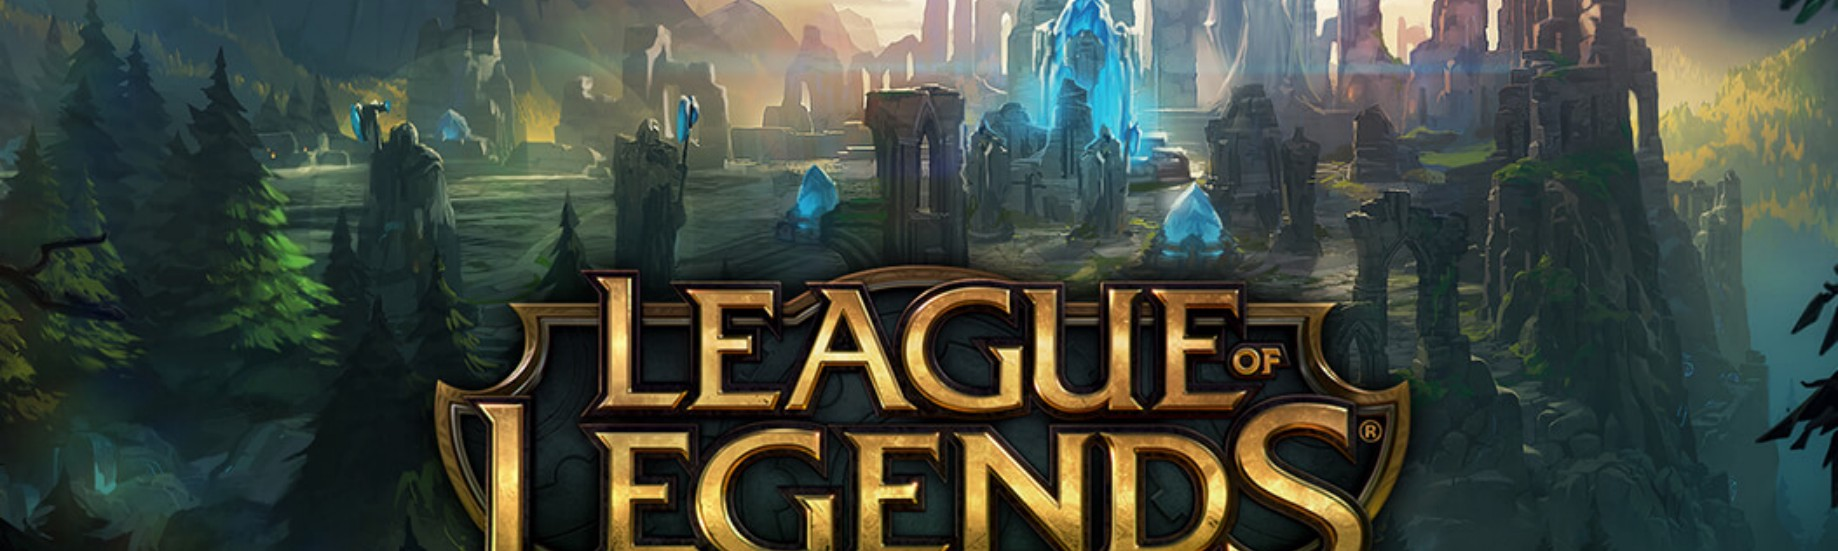 Reasons And Implications Of Garena S Decision To Merge Id League Of Legends Servers With Sg My By Esports Indie Review Medium